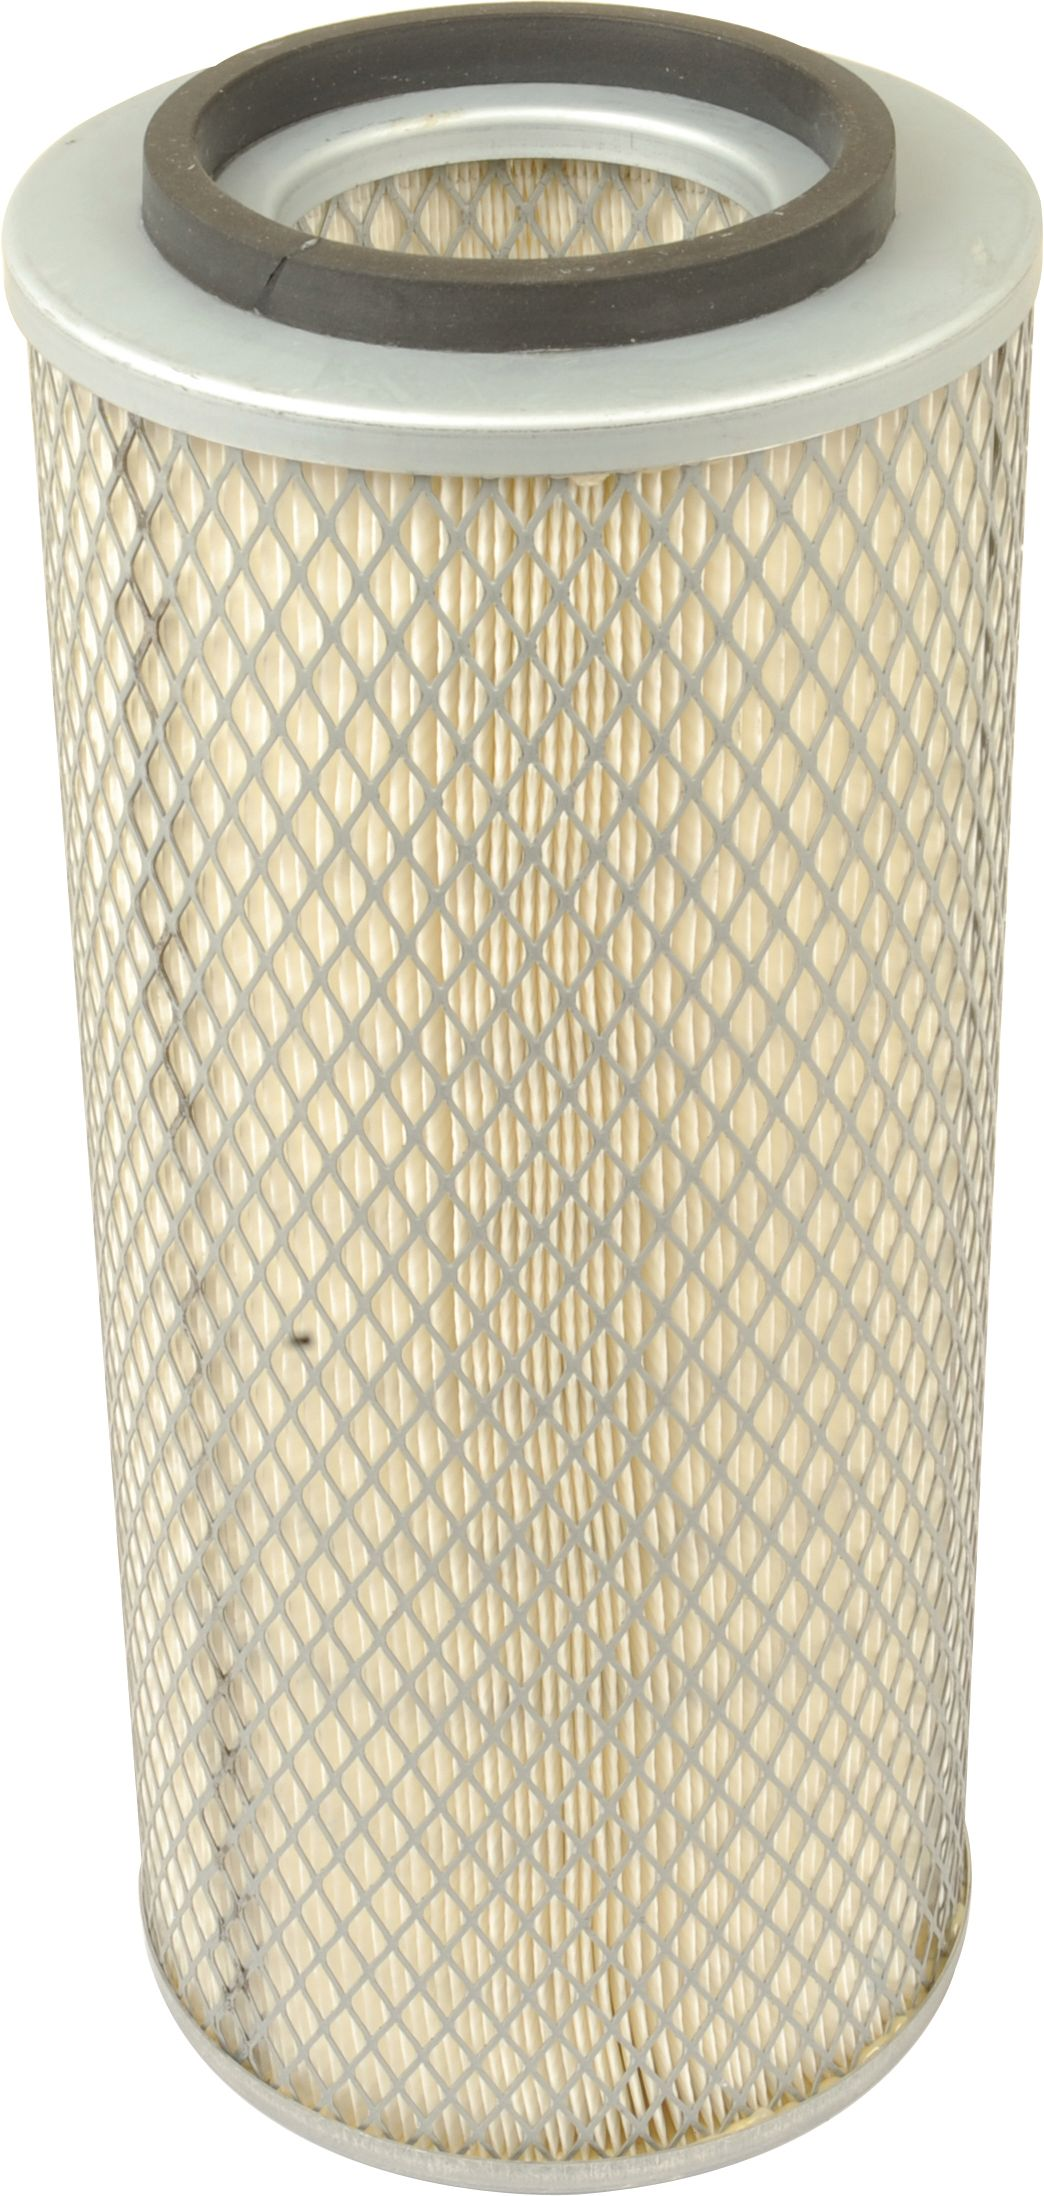 MERCEDES BENZ OUTER AIR FILTER AF4135 108904